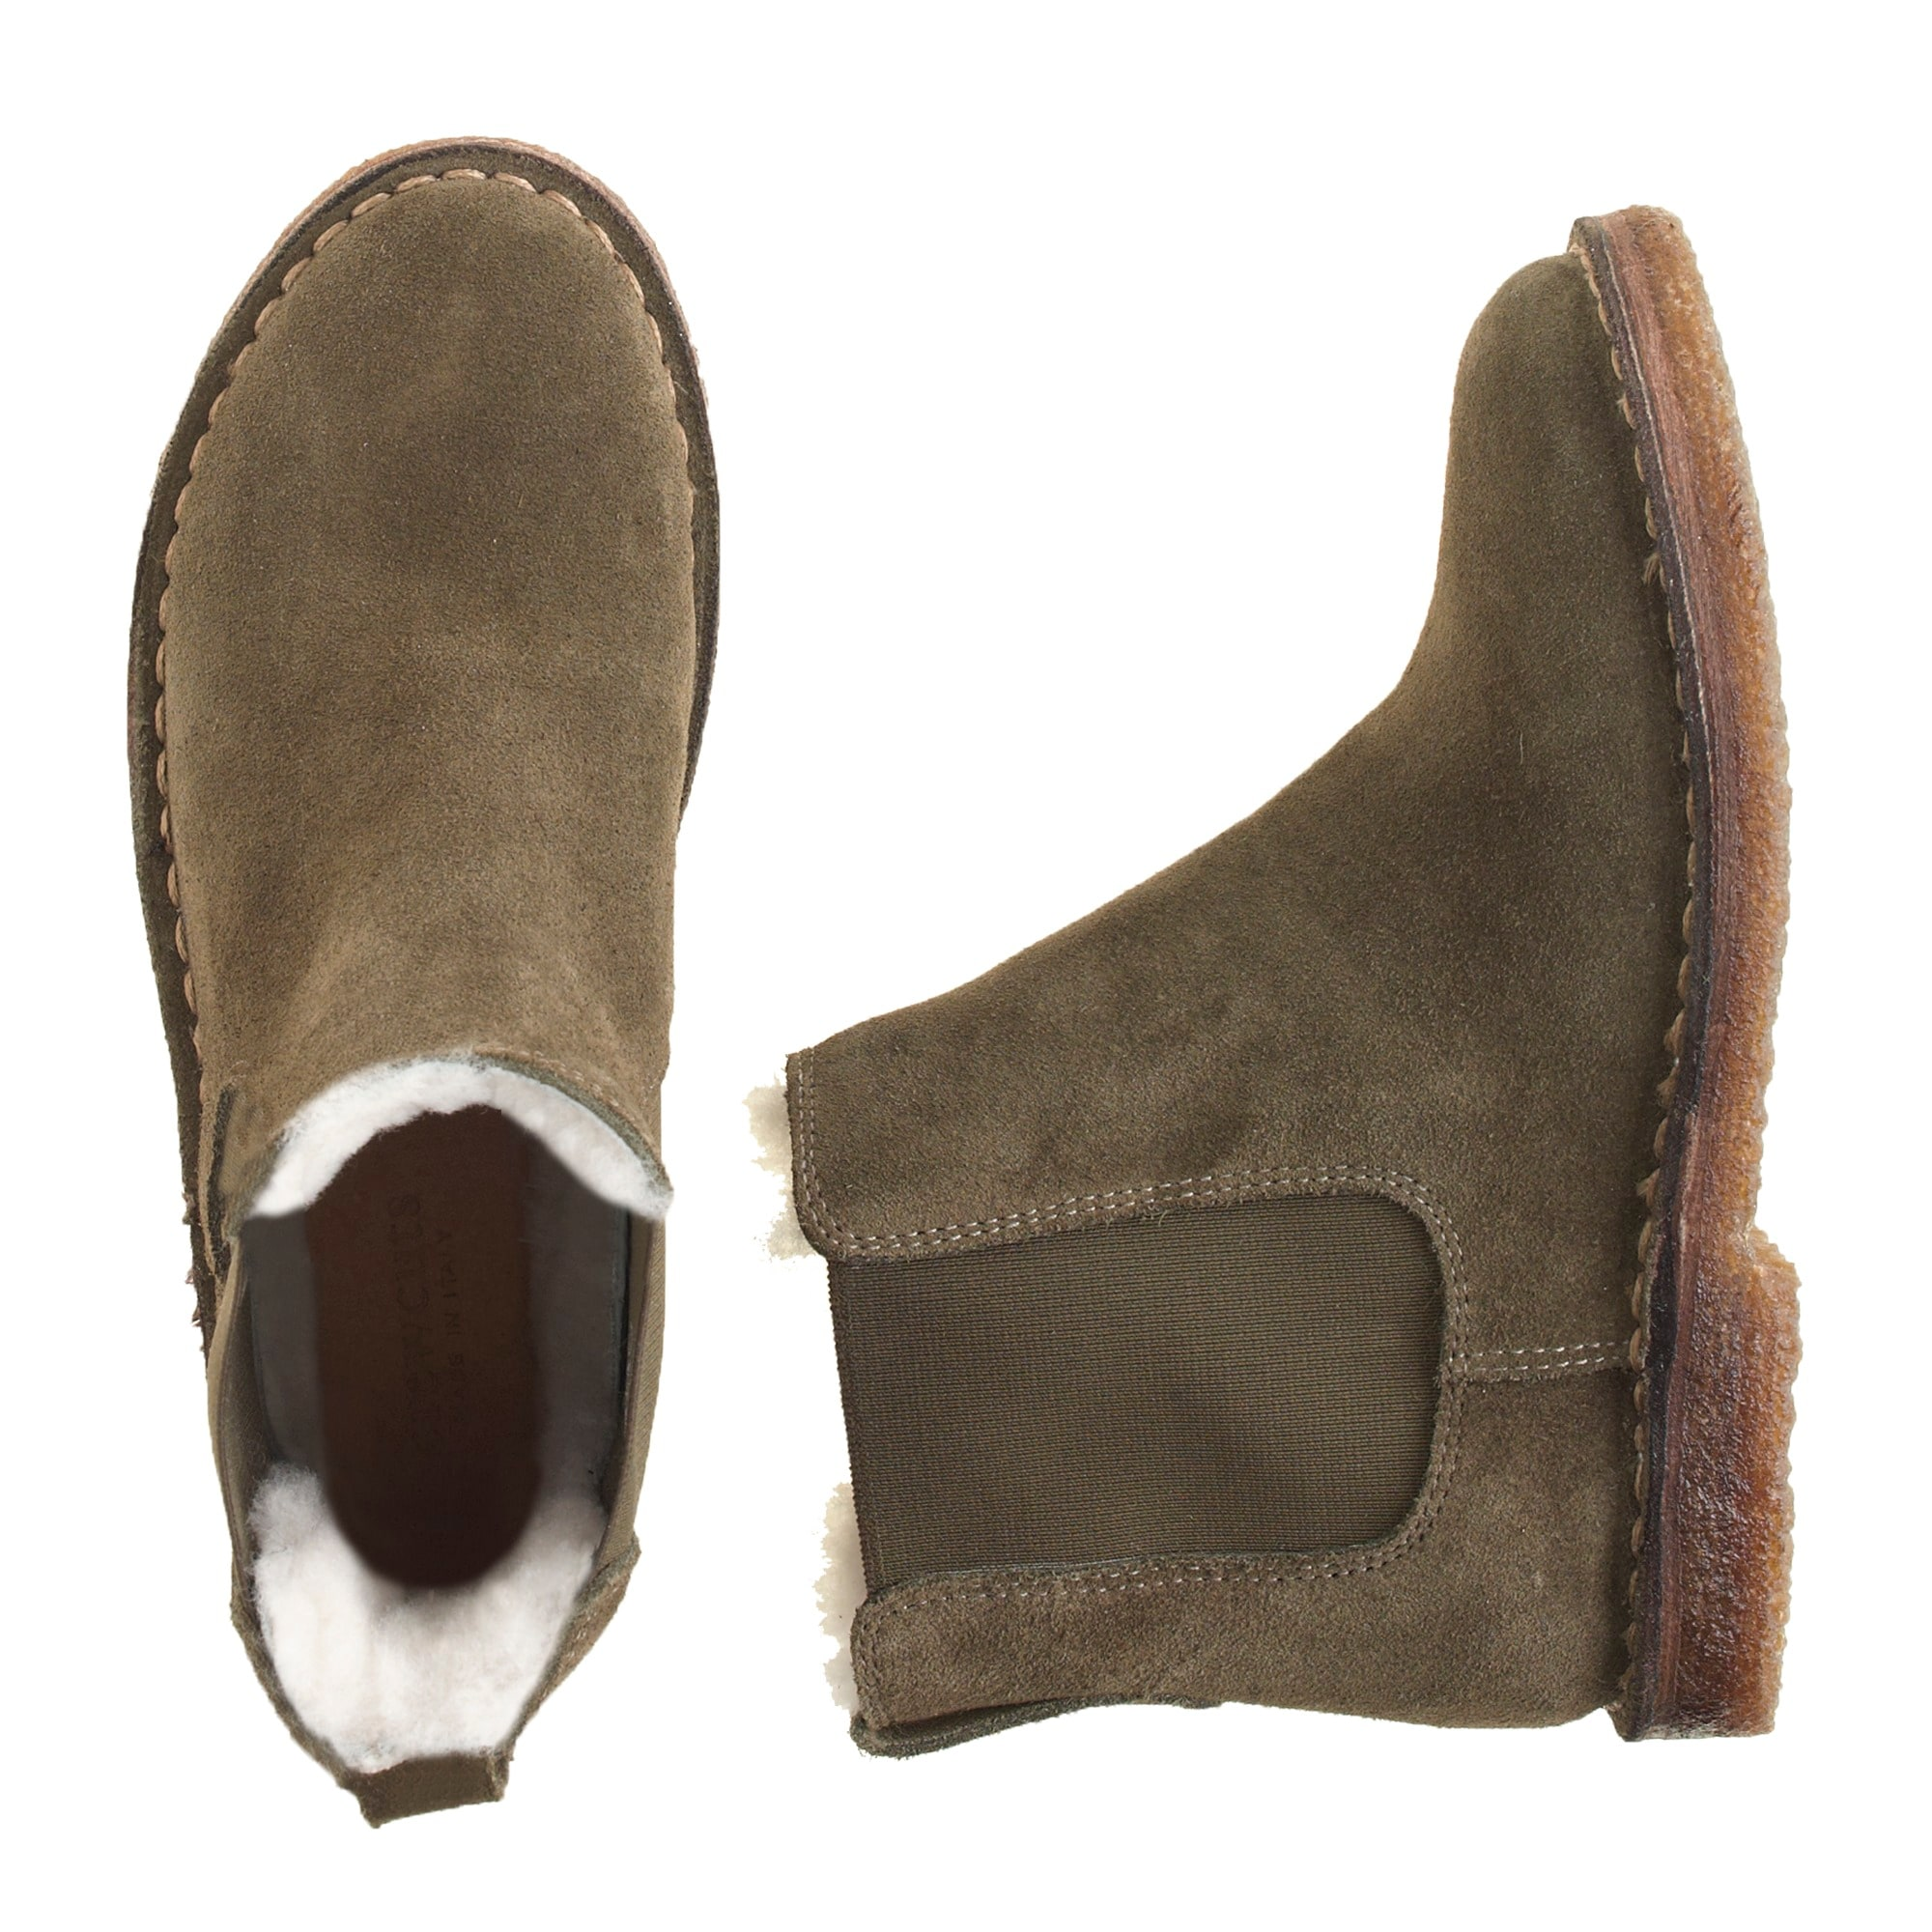 Image 1 for Boys' suede shearling-lined Chelsea boots